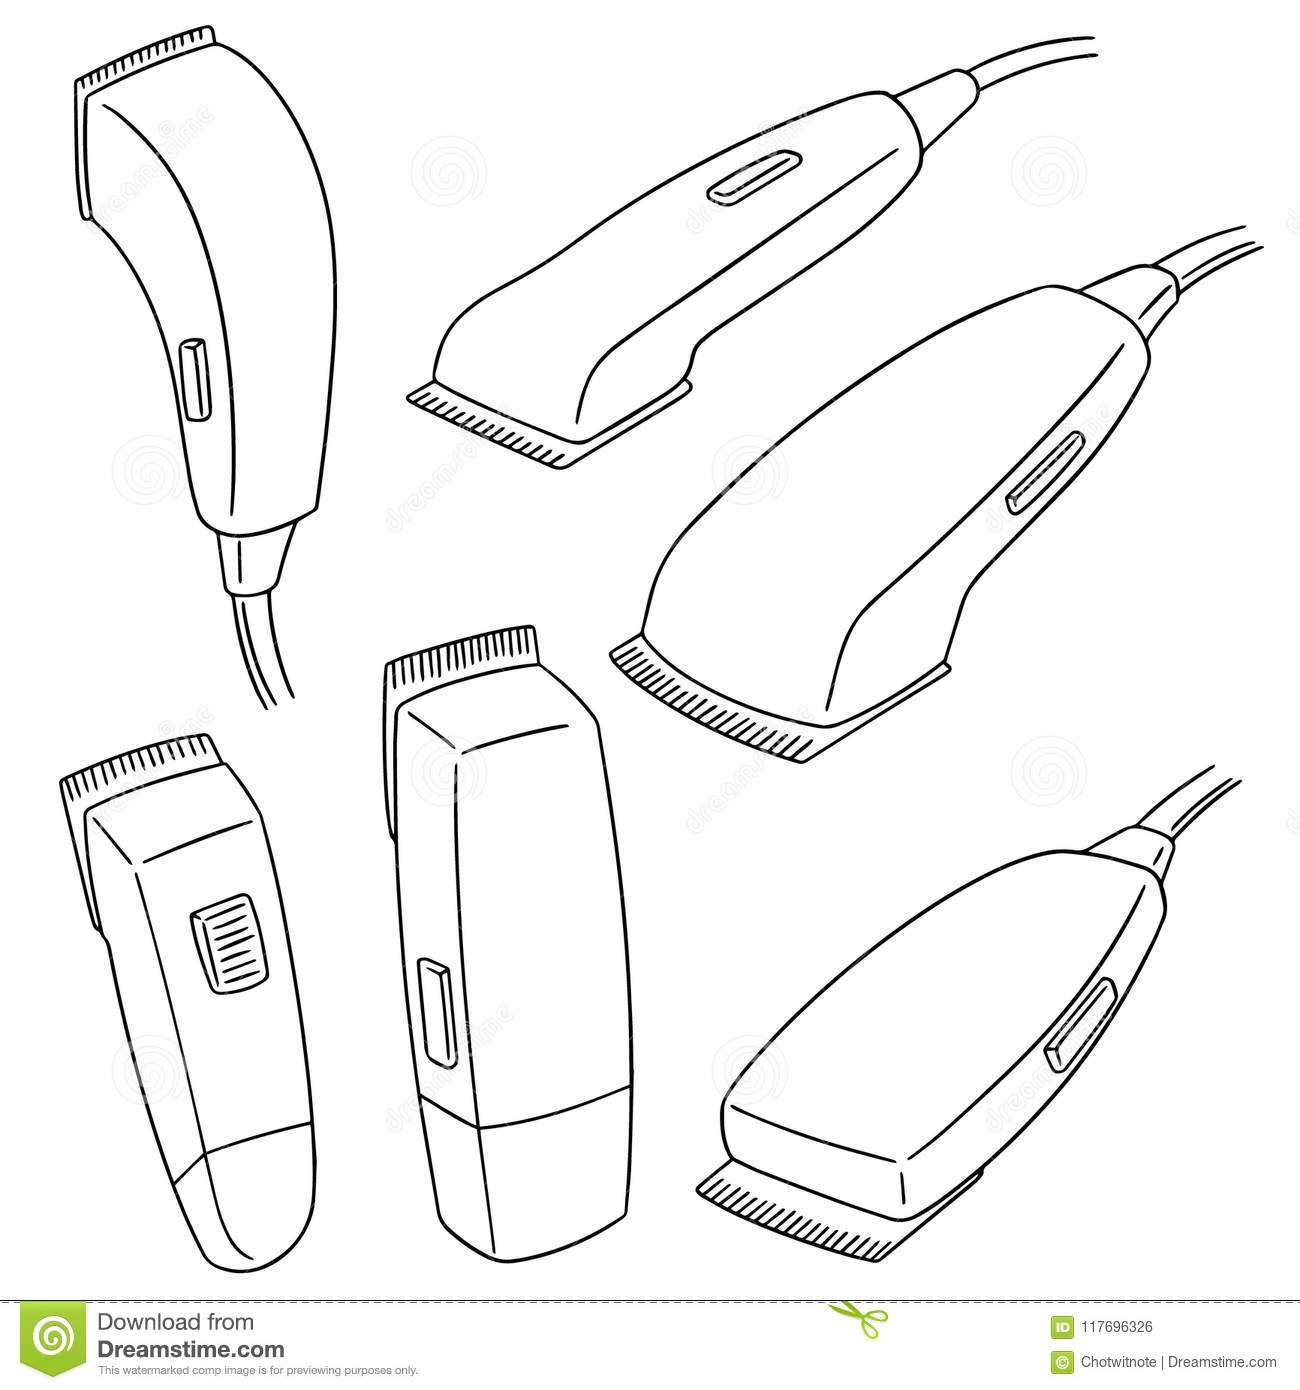 Vector Set Of Hair Cutting Machine Stock Vector Illustration Of Beauty Line 117696326